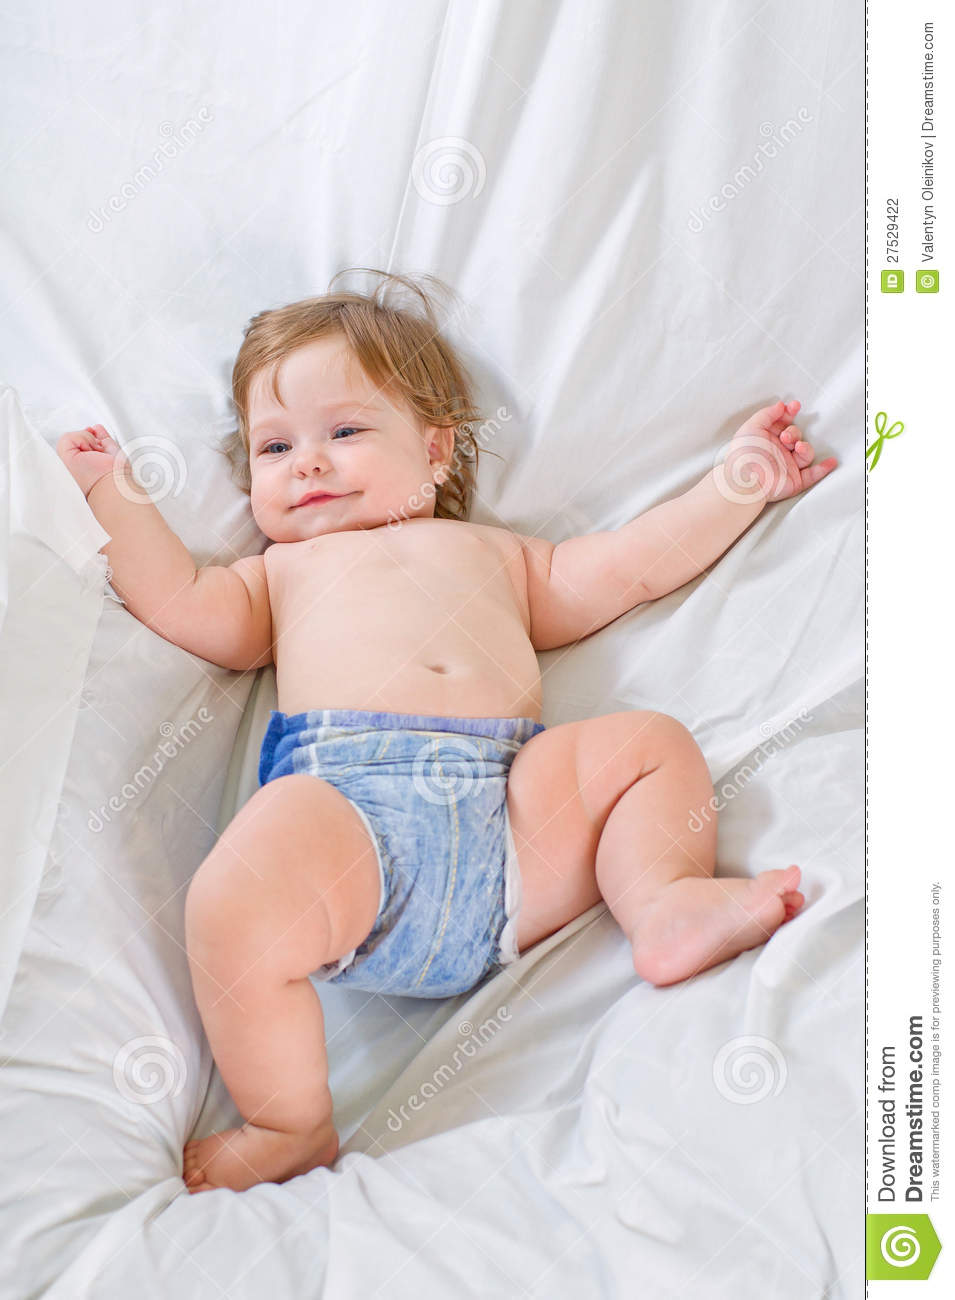 Cute Baby Girl Smiles On White Cloth Stock Photography ...